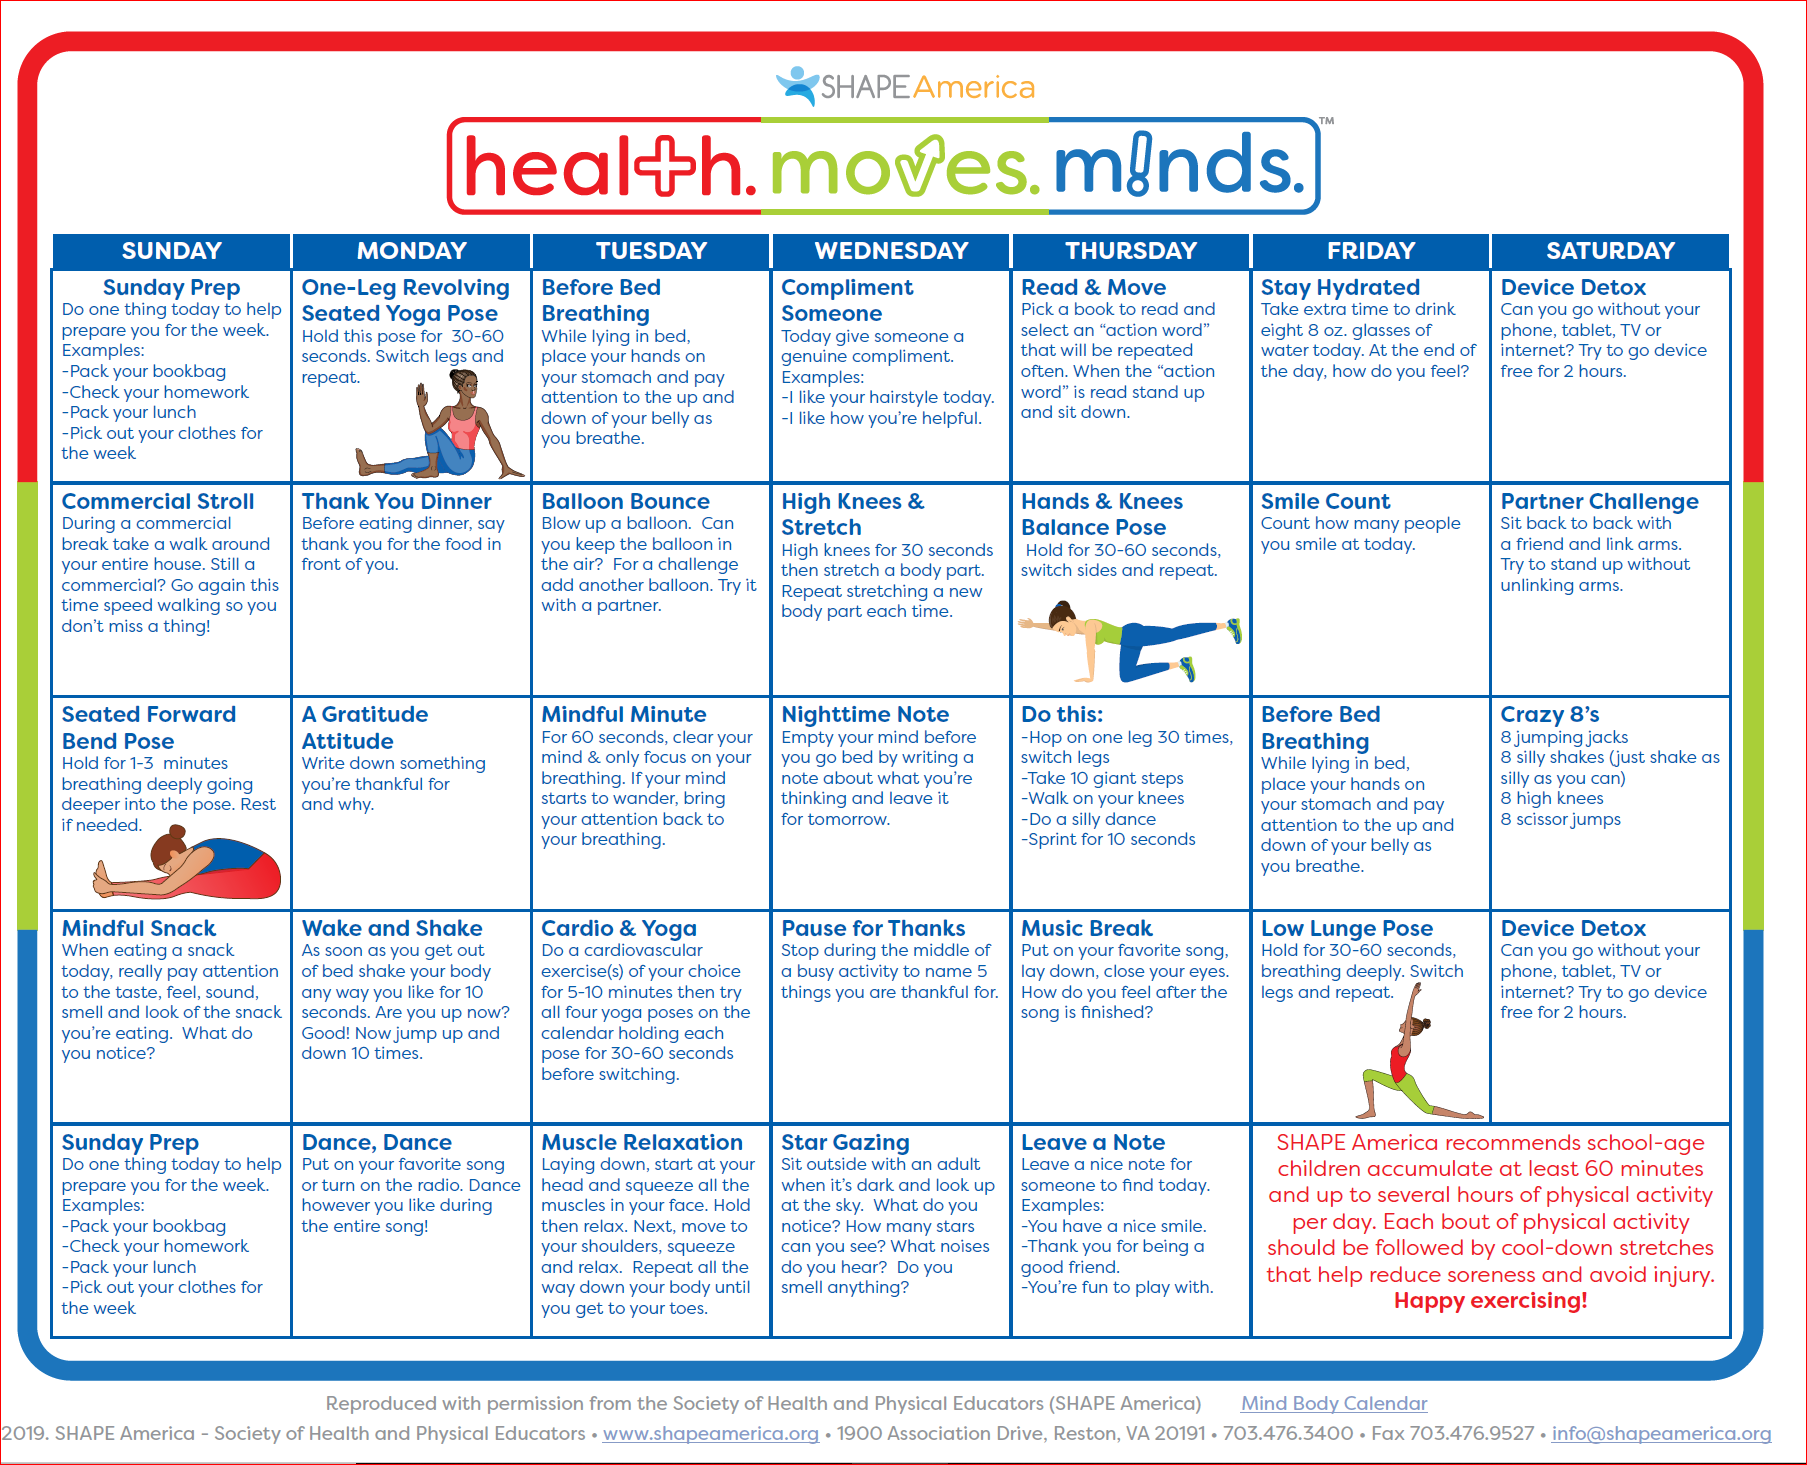 Mindfulness Calendar from health. moves. minds.